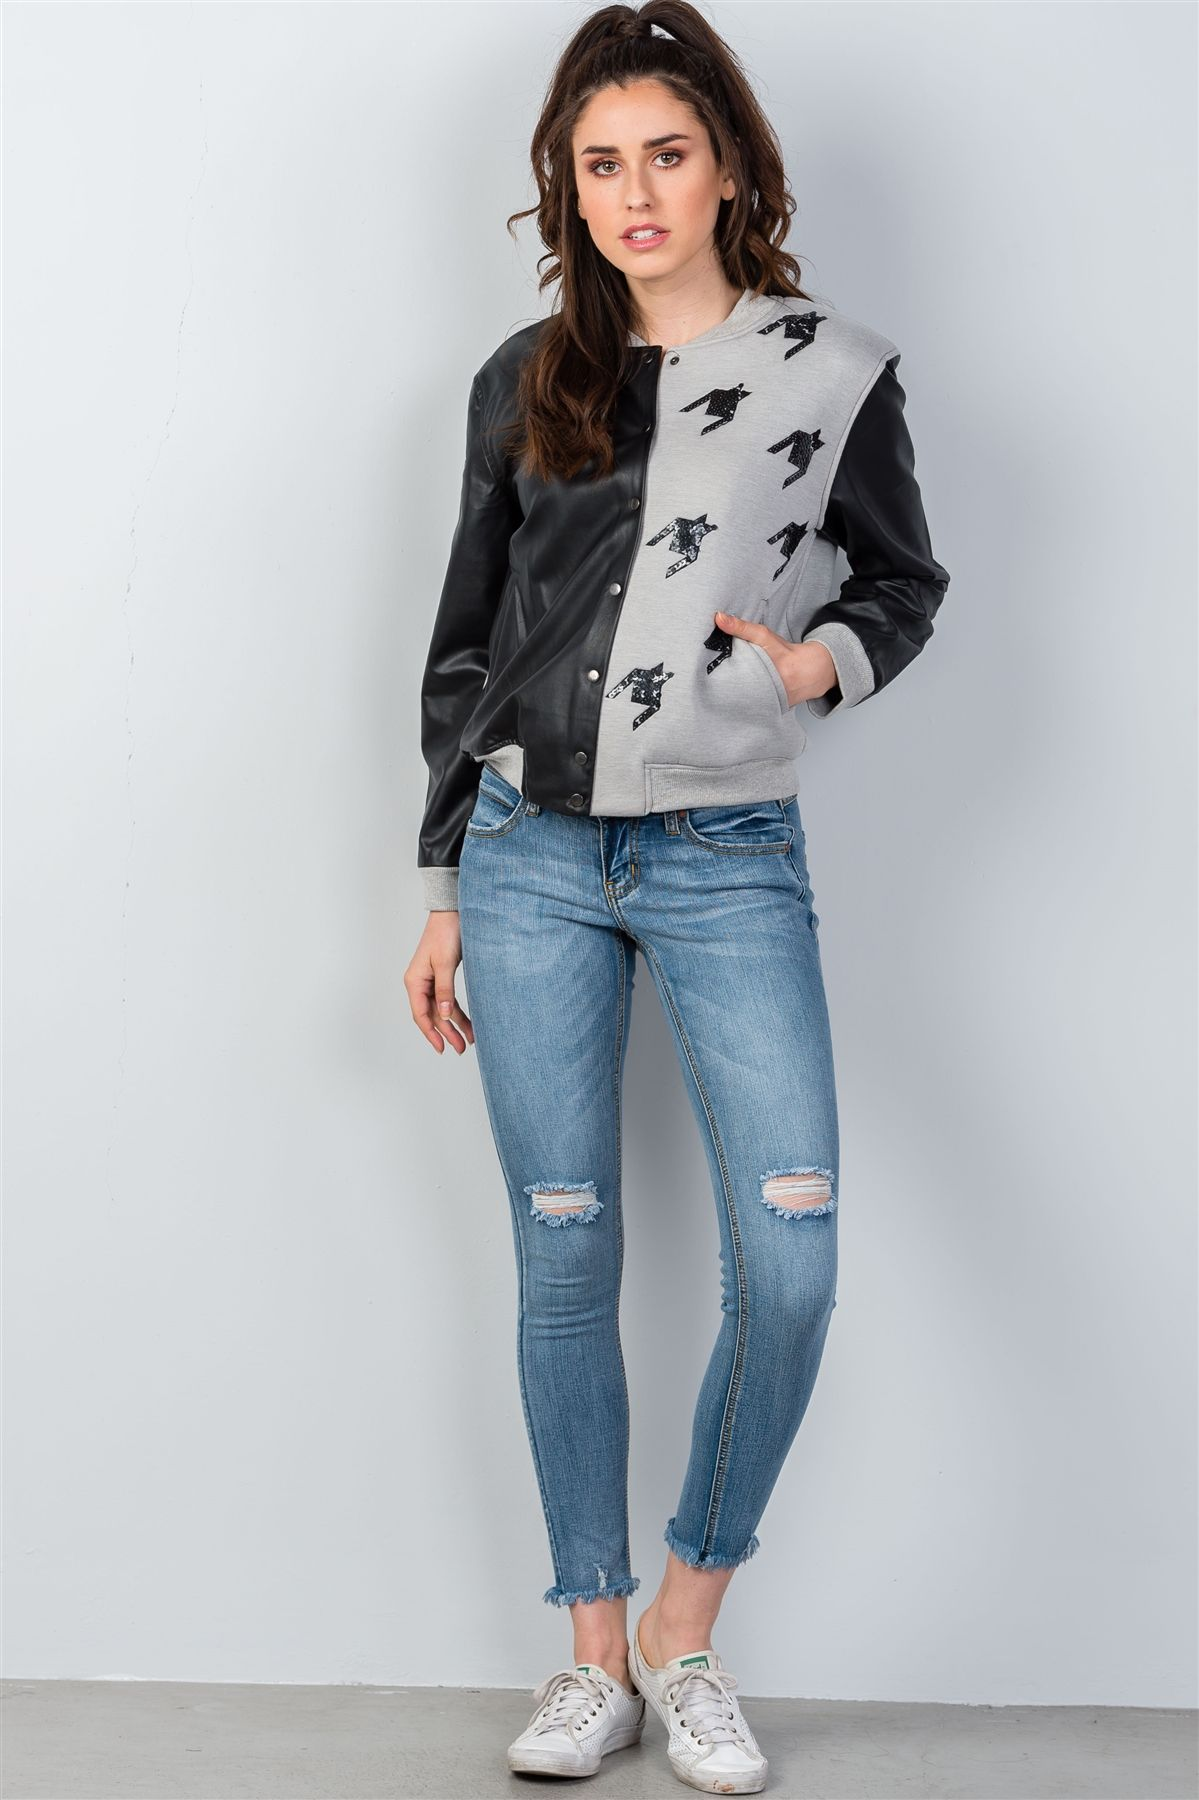 Ladies fashion black & grey colorblock jacket